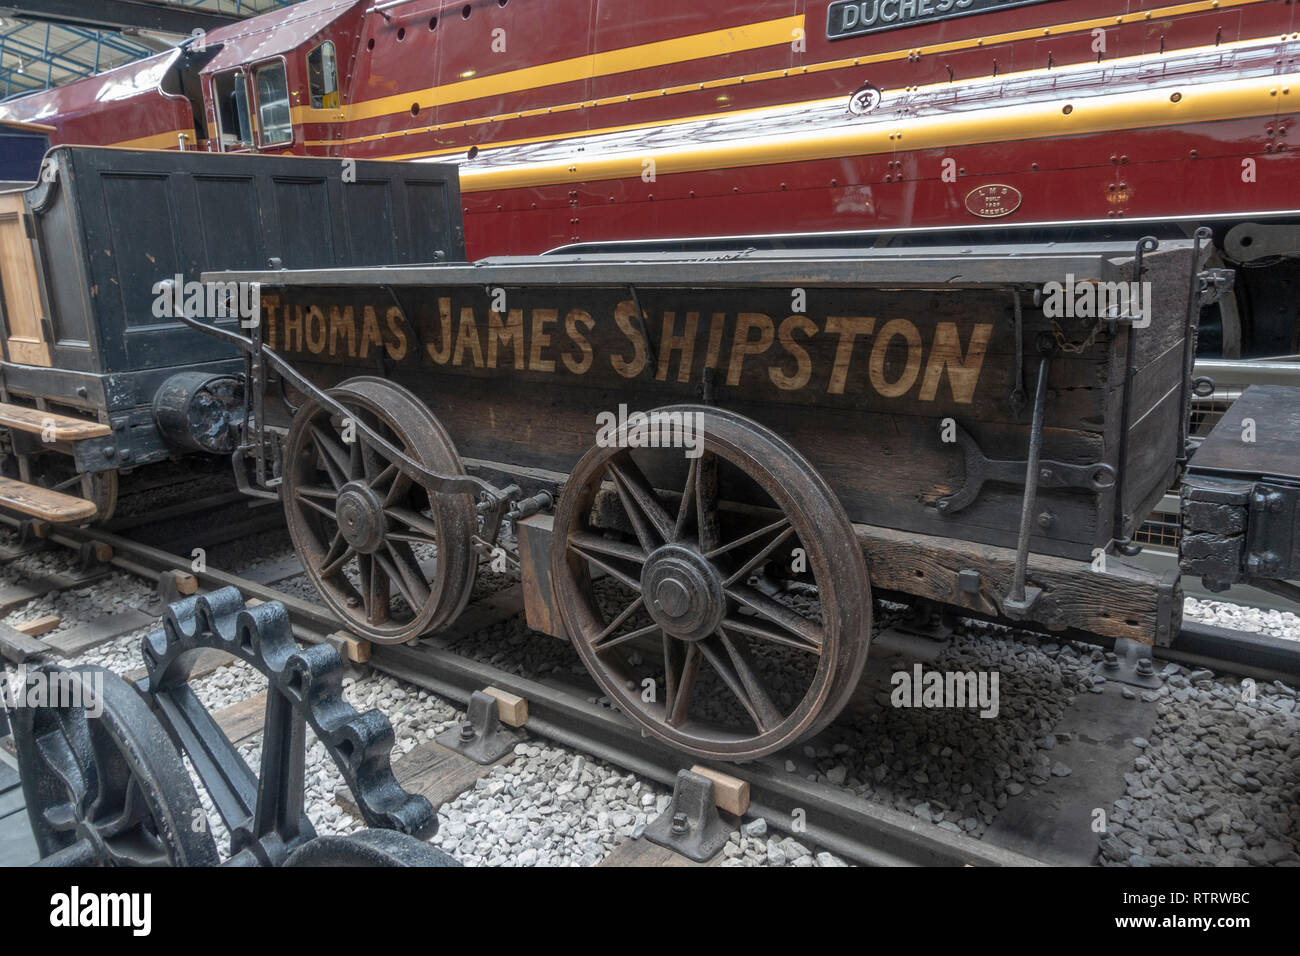 A horse drawn railway wagon, Stratford & Moreton Tramway on display in the National Railway Museum, York, UK. - Stock Image